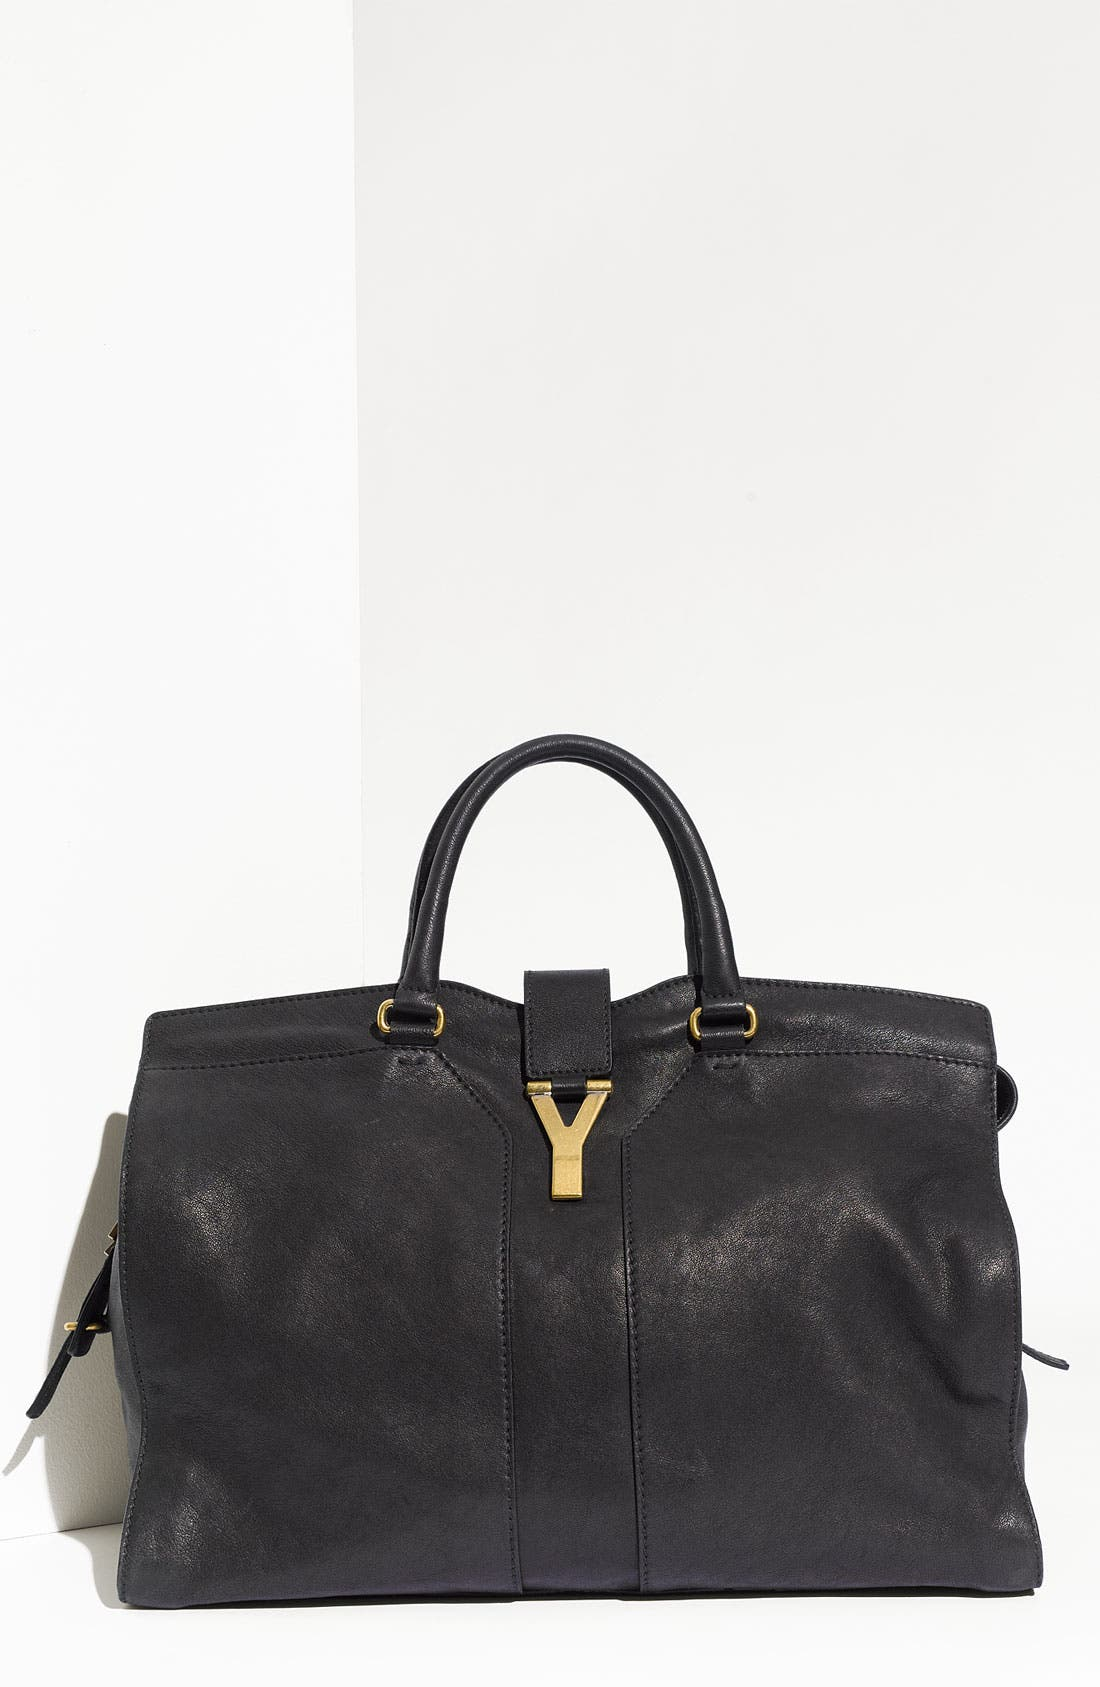 Main Image - Yves Saint Laurent Paris 'Cabas Chyc - Large' Leather Satchel